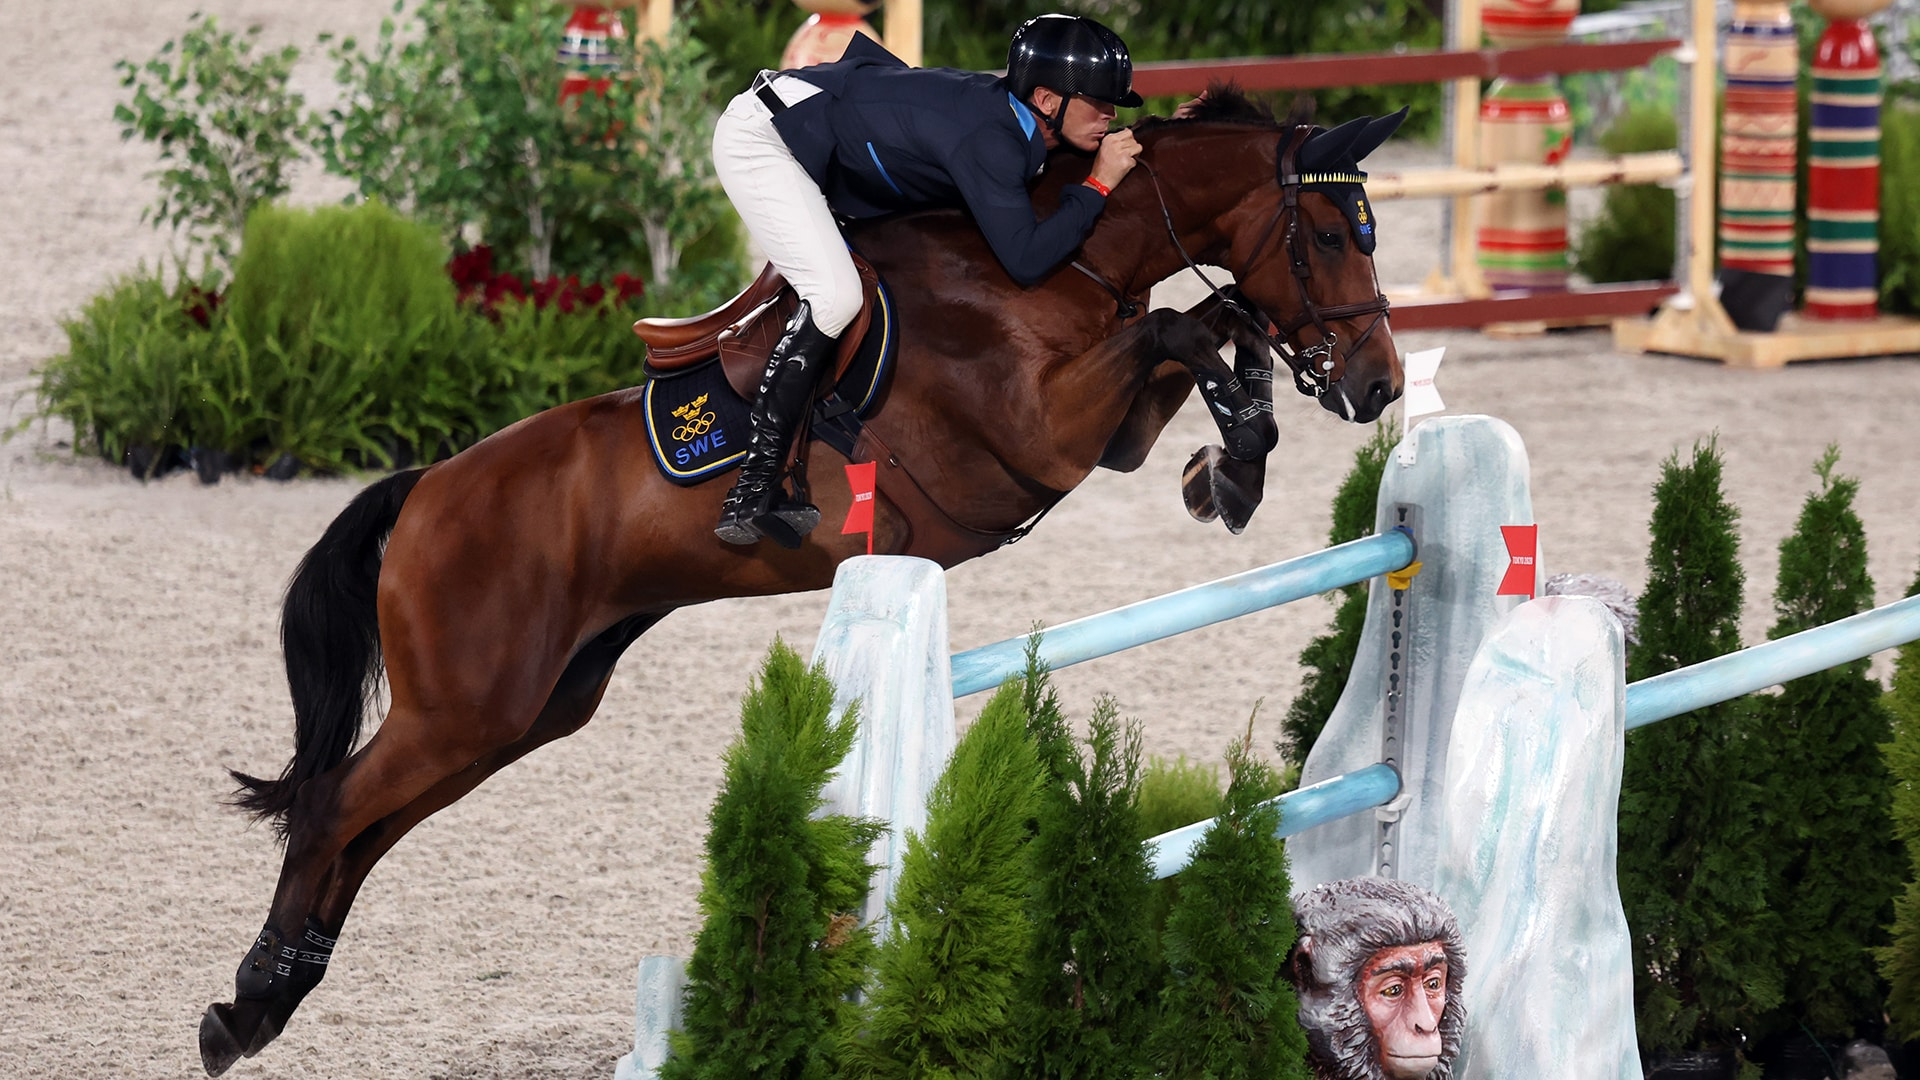 Image for Sweden beats U.S. by 1.3 seconds in thrilling jump-off for team show jumping gold